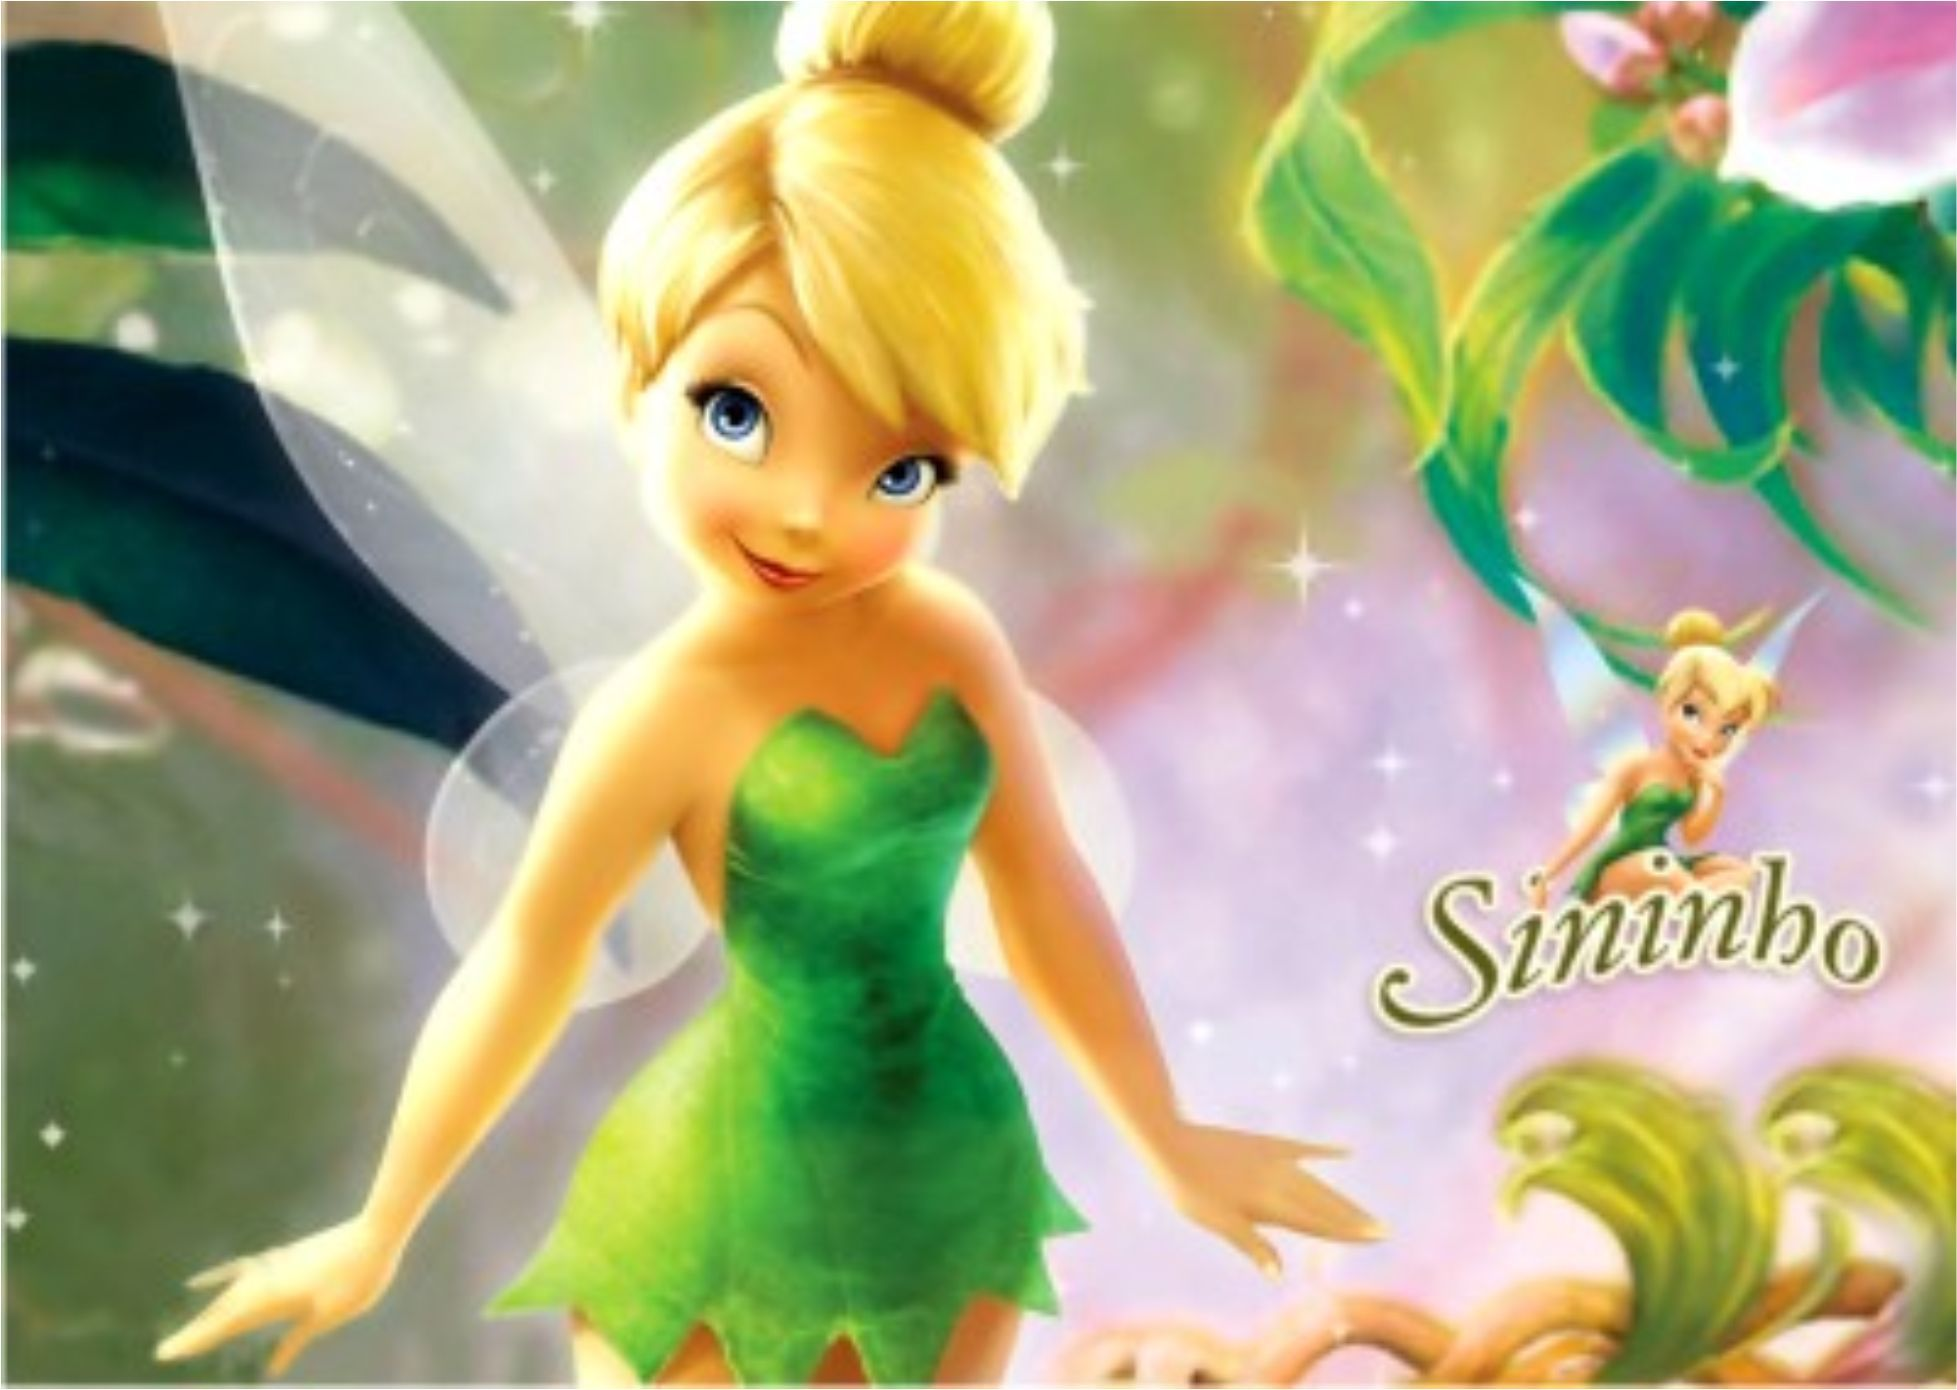 Free tinkerbell nude wallpapers screensavers nudes doll